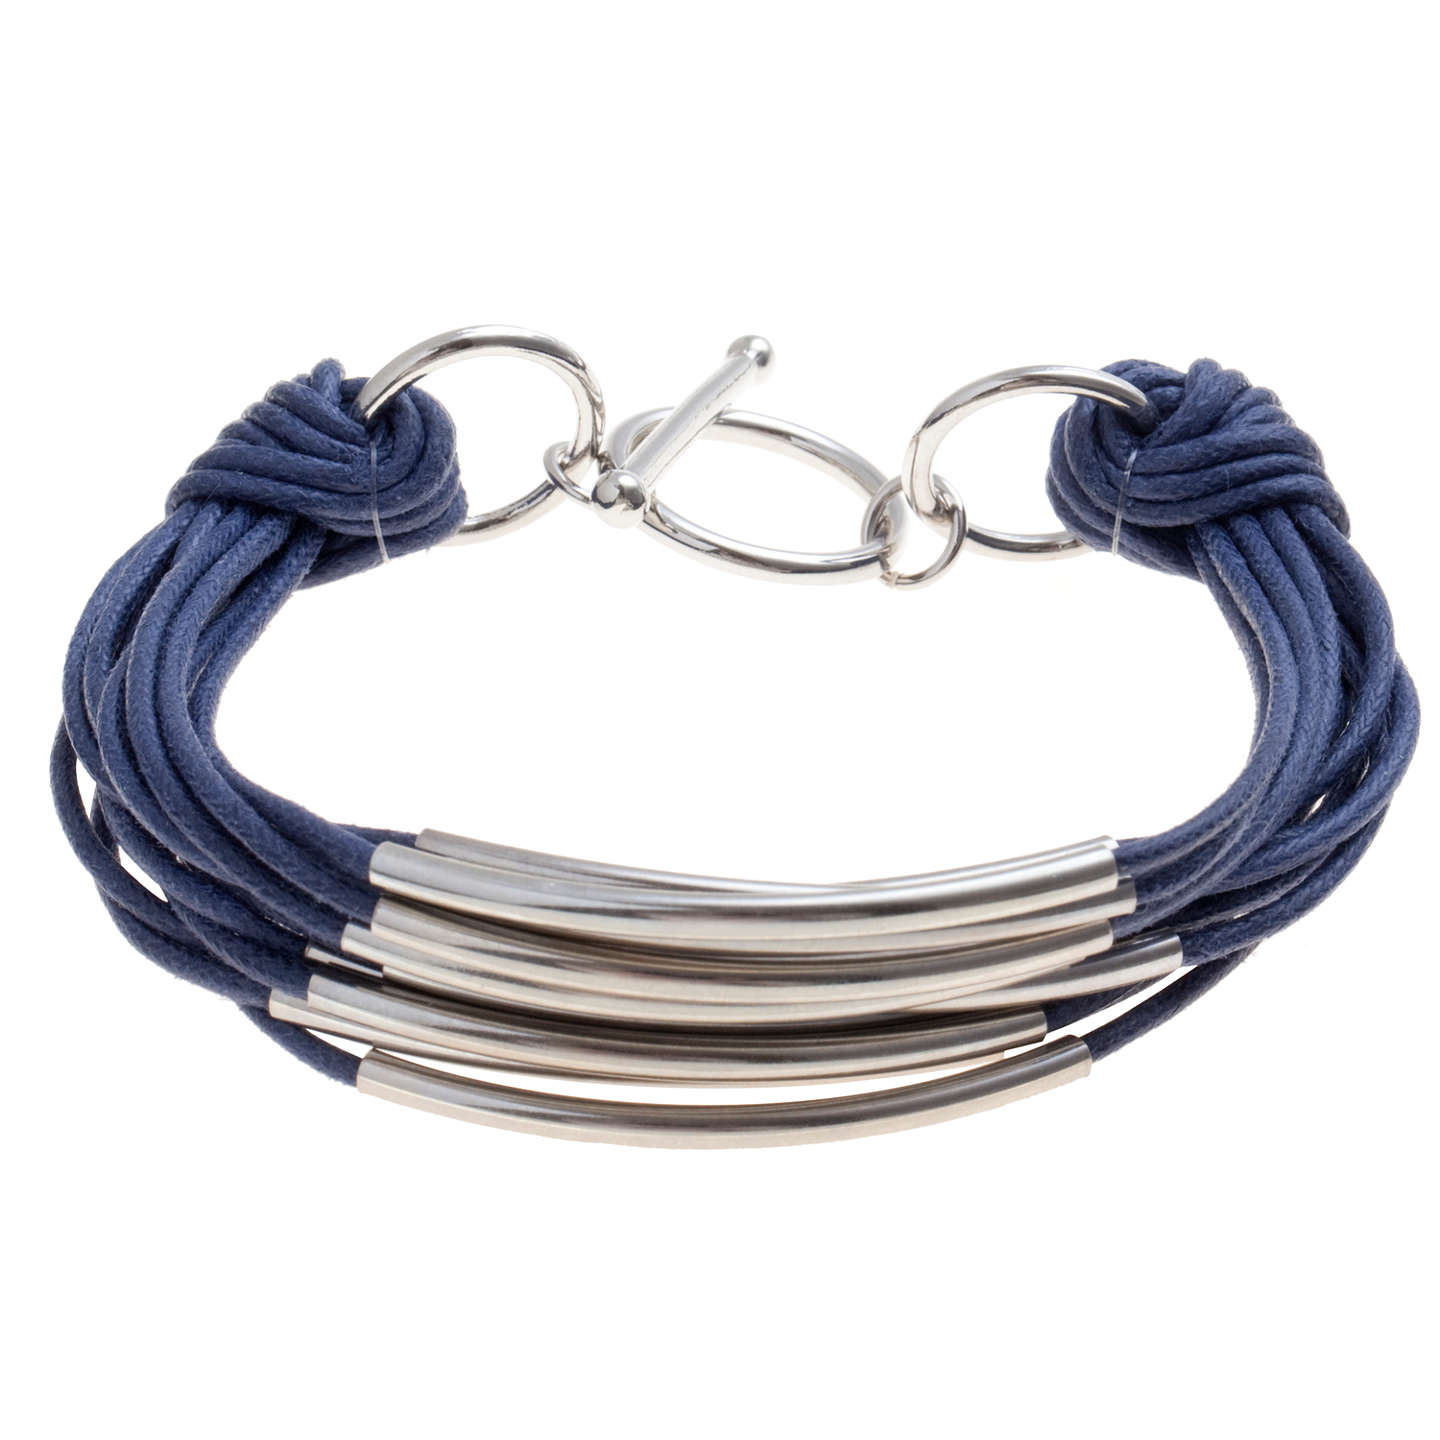 shackle jewelry survival in bracelets buckle new from camping bracelet women sport arrival men fashion steel cord parachute item navy style stainless charm